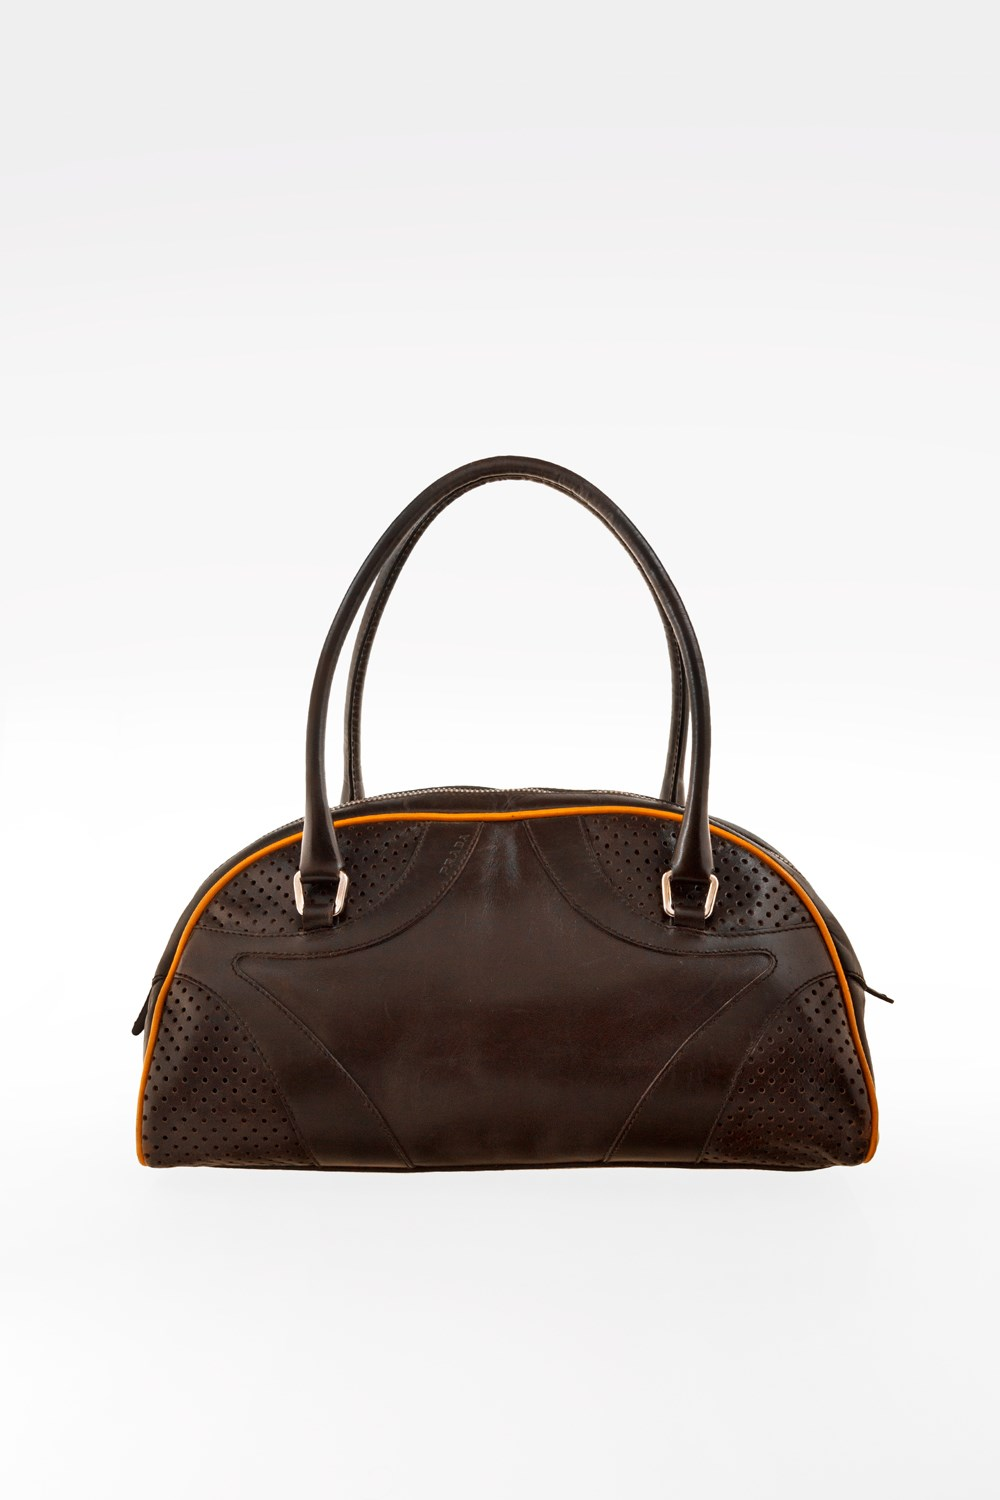 1a67b59609d8 ... Small Brown Leather Bauletto with Perforated Details. Mouse ...